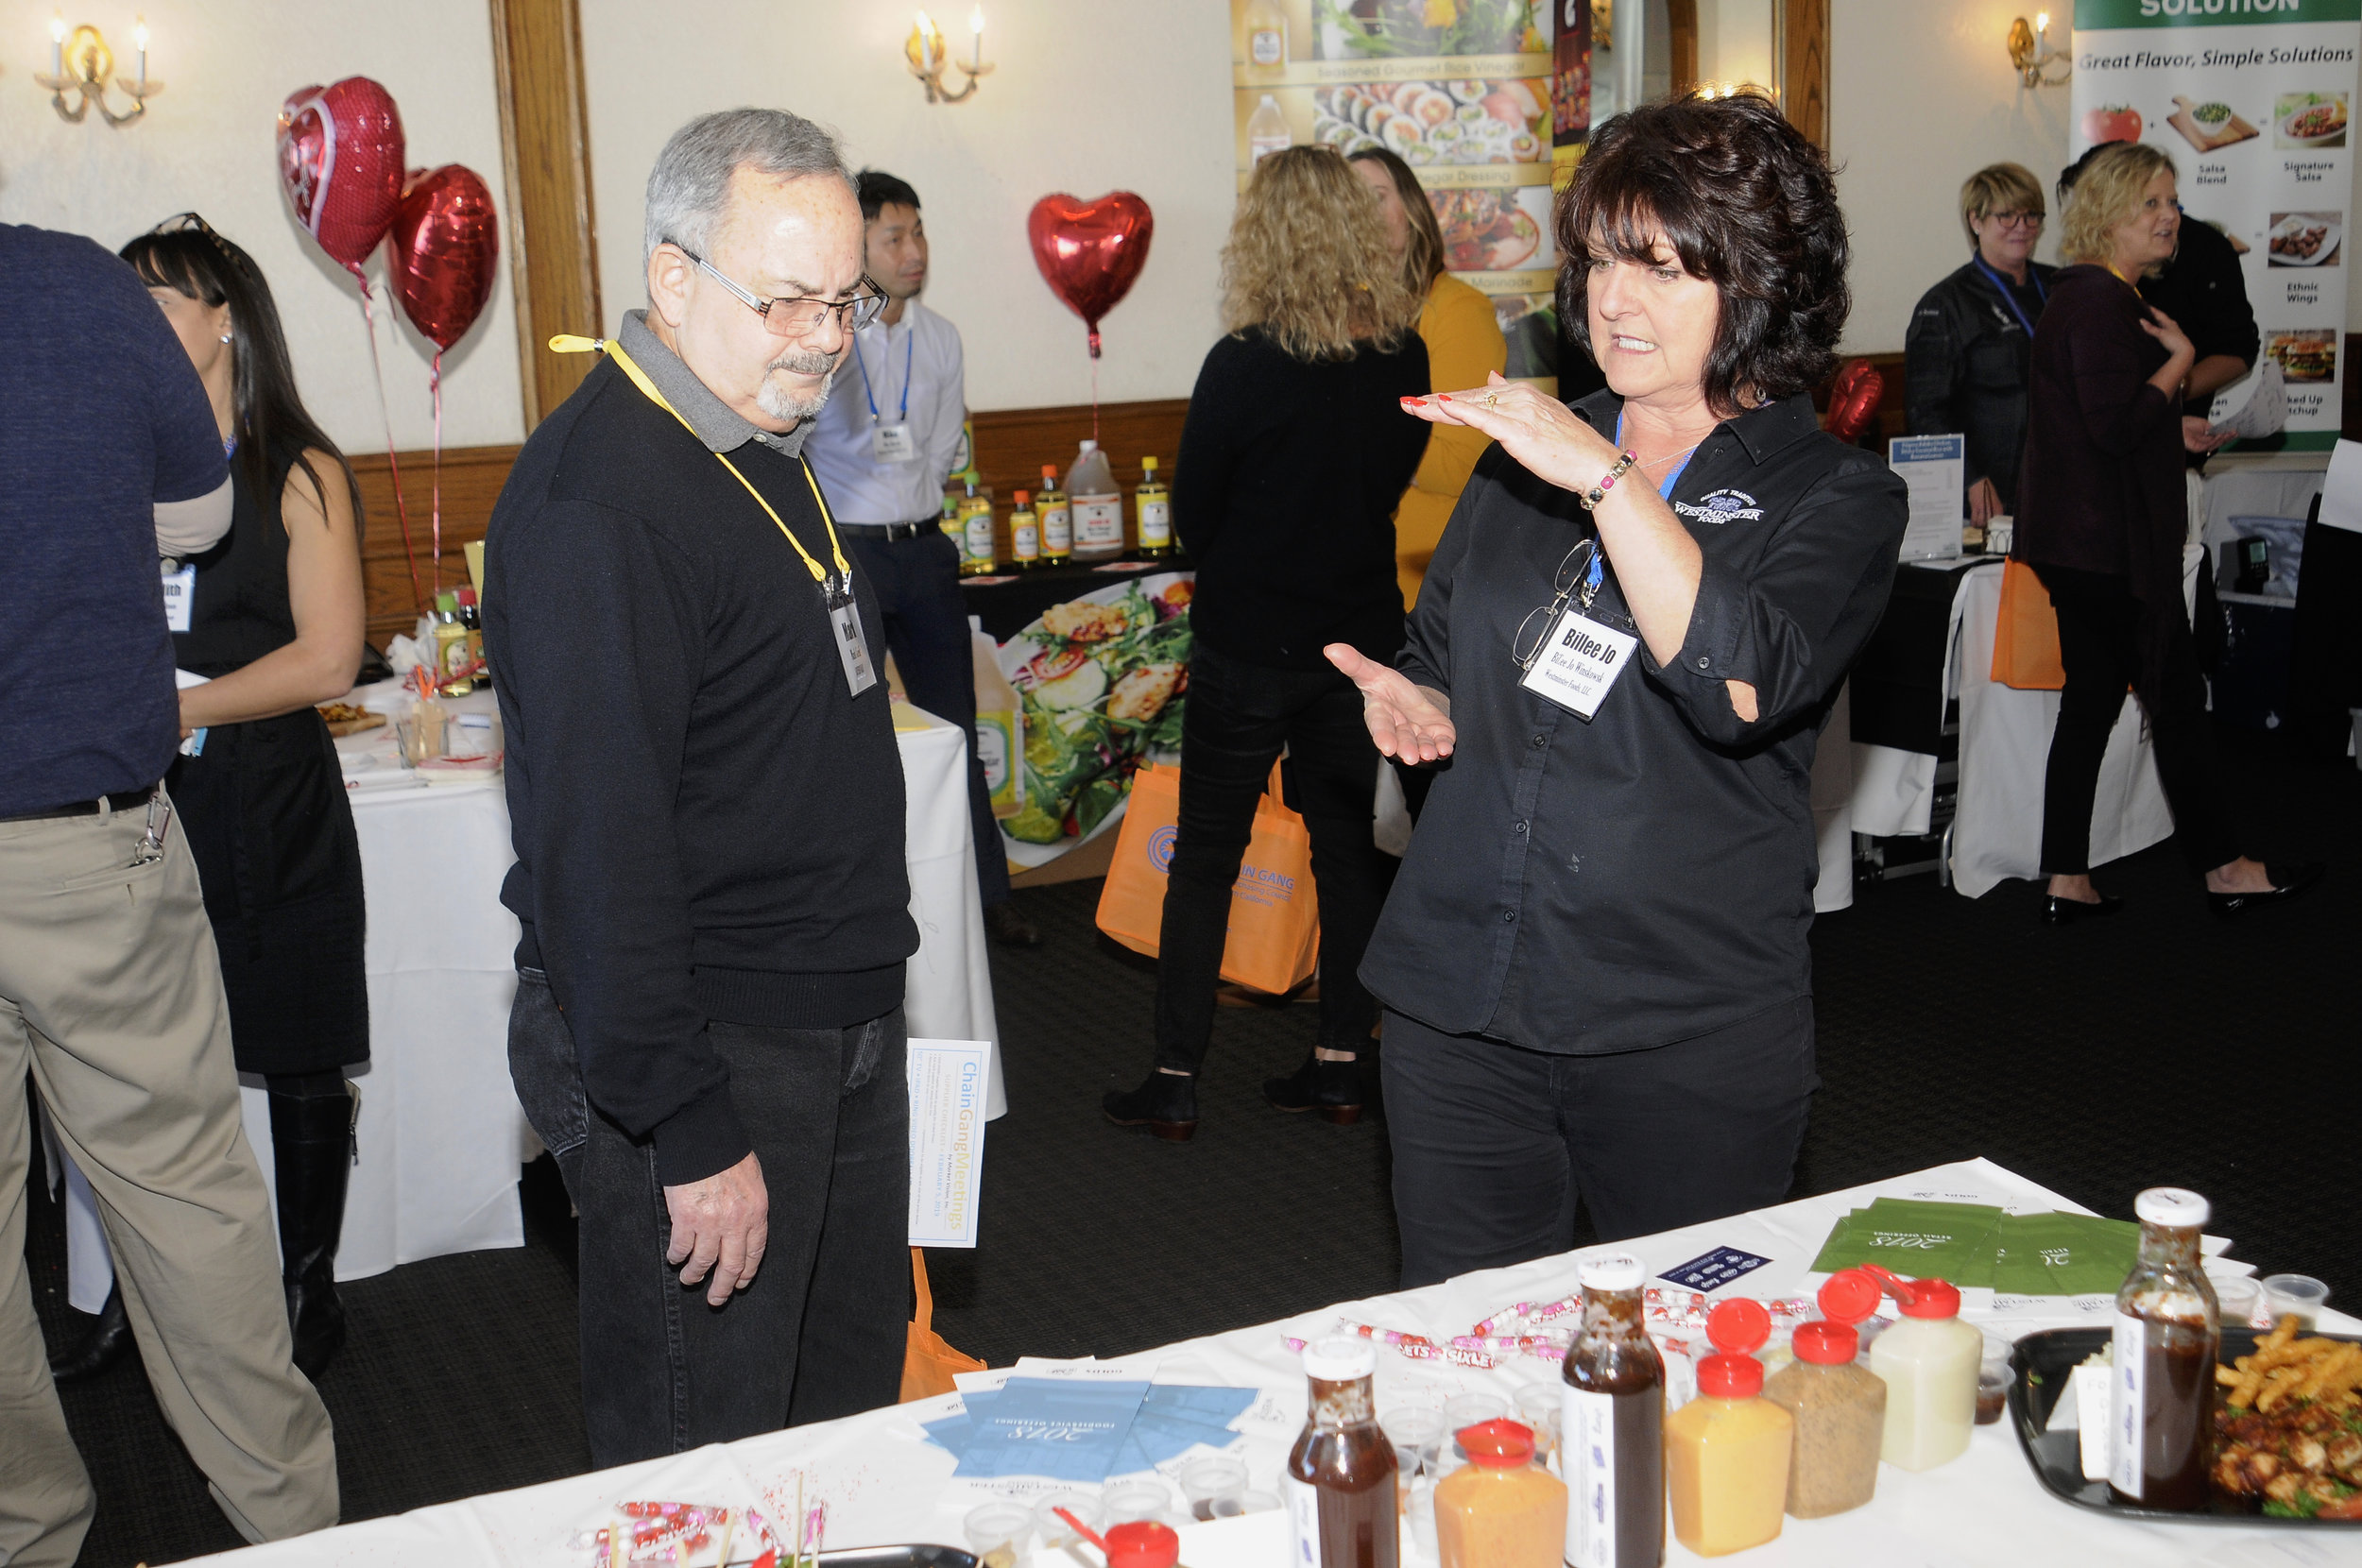 040 Market Vision Event at The Reef in Long Beach 02-05-19.jpg